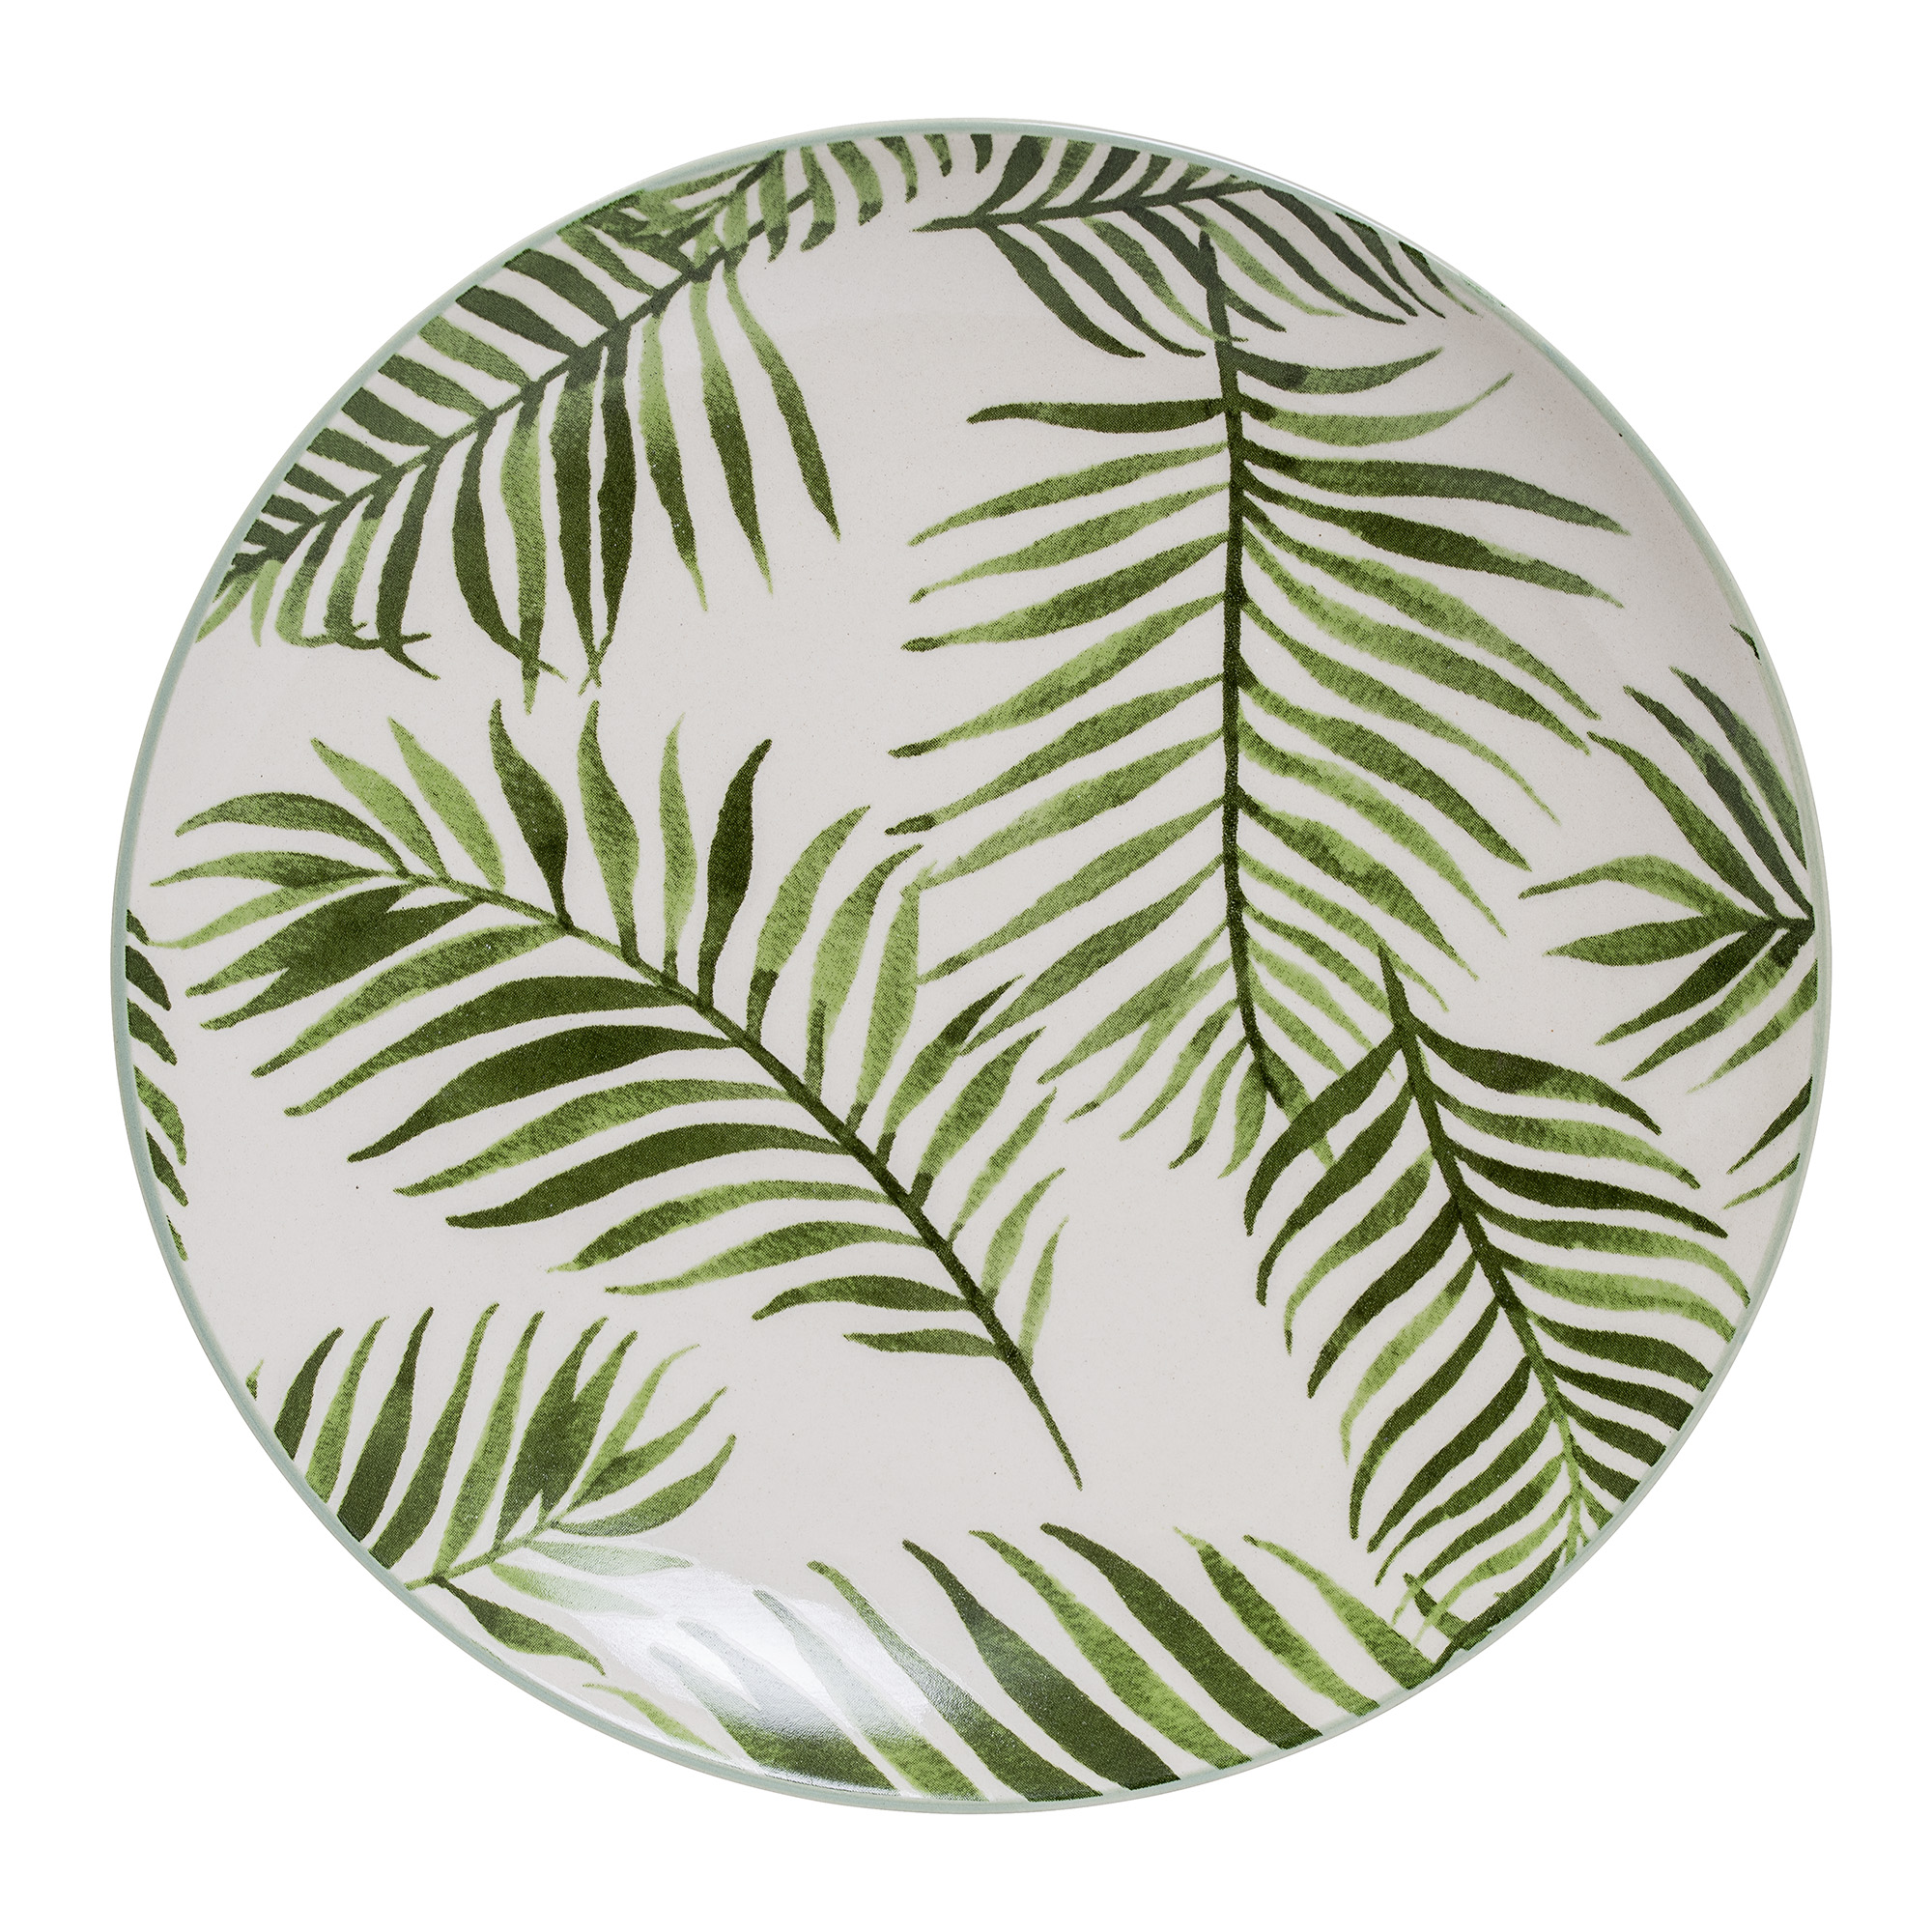 #001 Palm Side Plate    20cm Hire Price - £2.30 Minimum Order 10 Current Stock Available 60